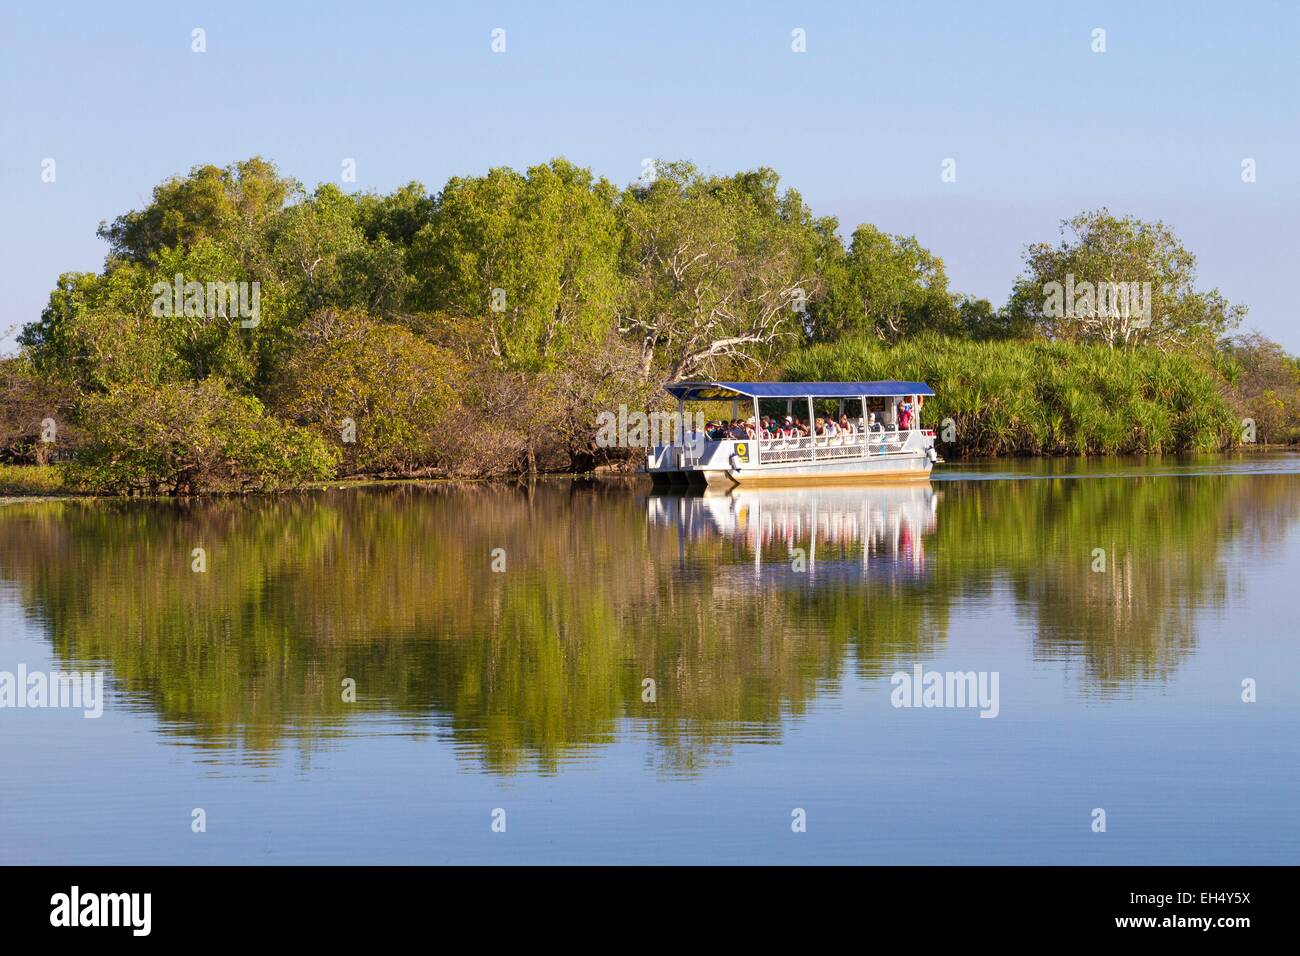 Australia, Northern Territory, Kakadu National Park, listed as World Heritage by UNESCO, cruise ship on the Yellow - Stock Image